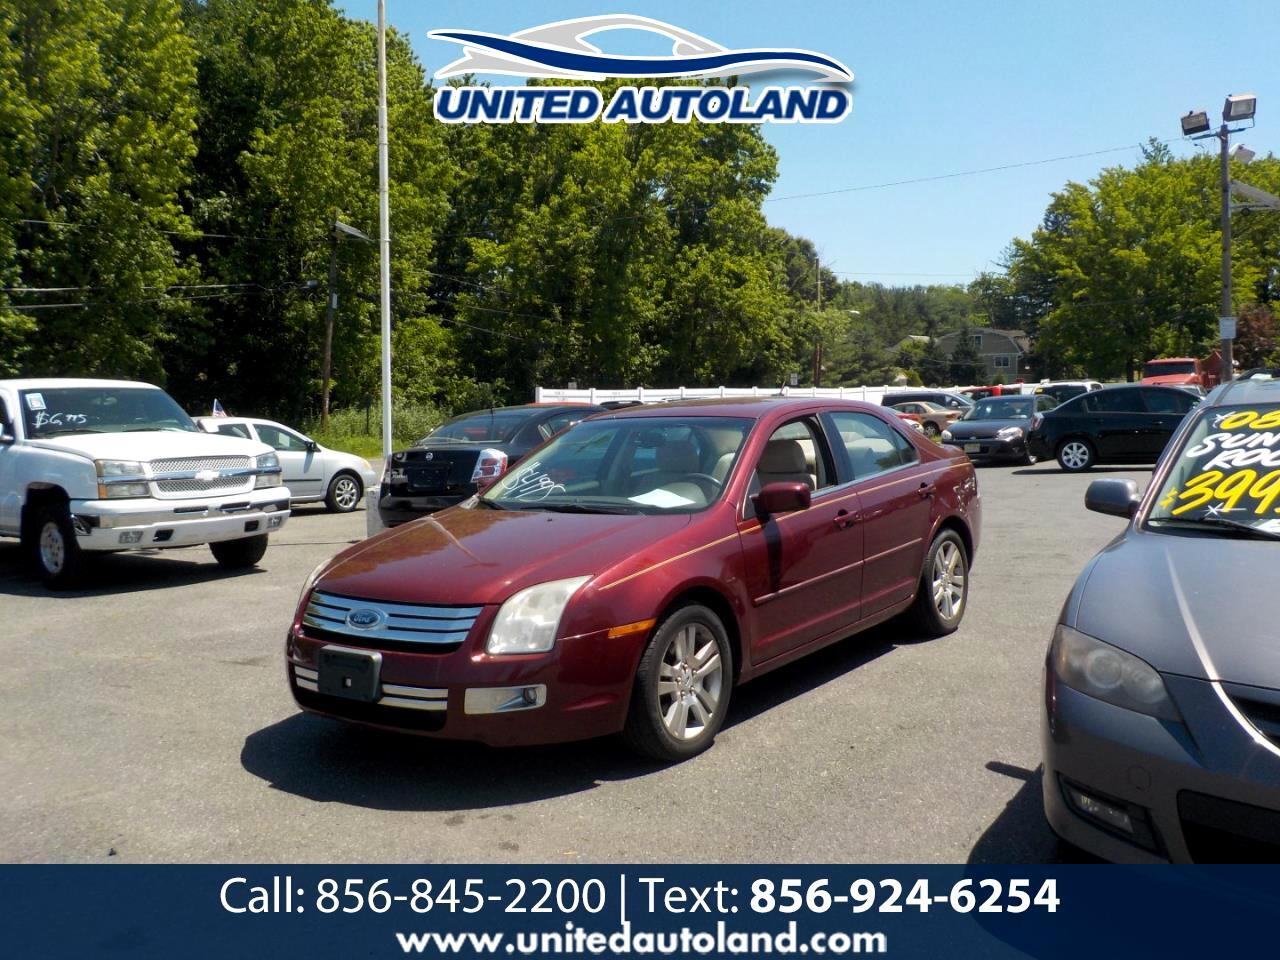 Ford Fusion 4dr Sdn I4 SEL FWD 2007